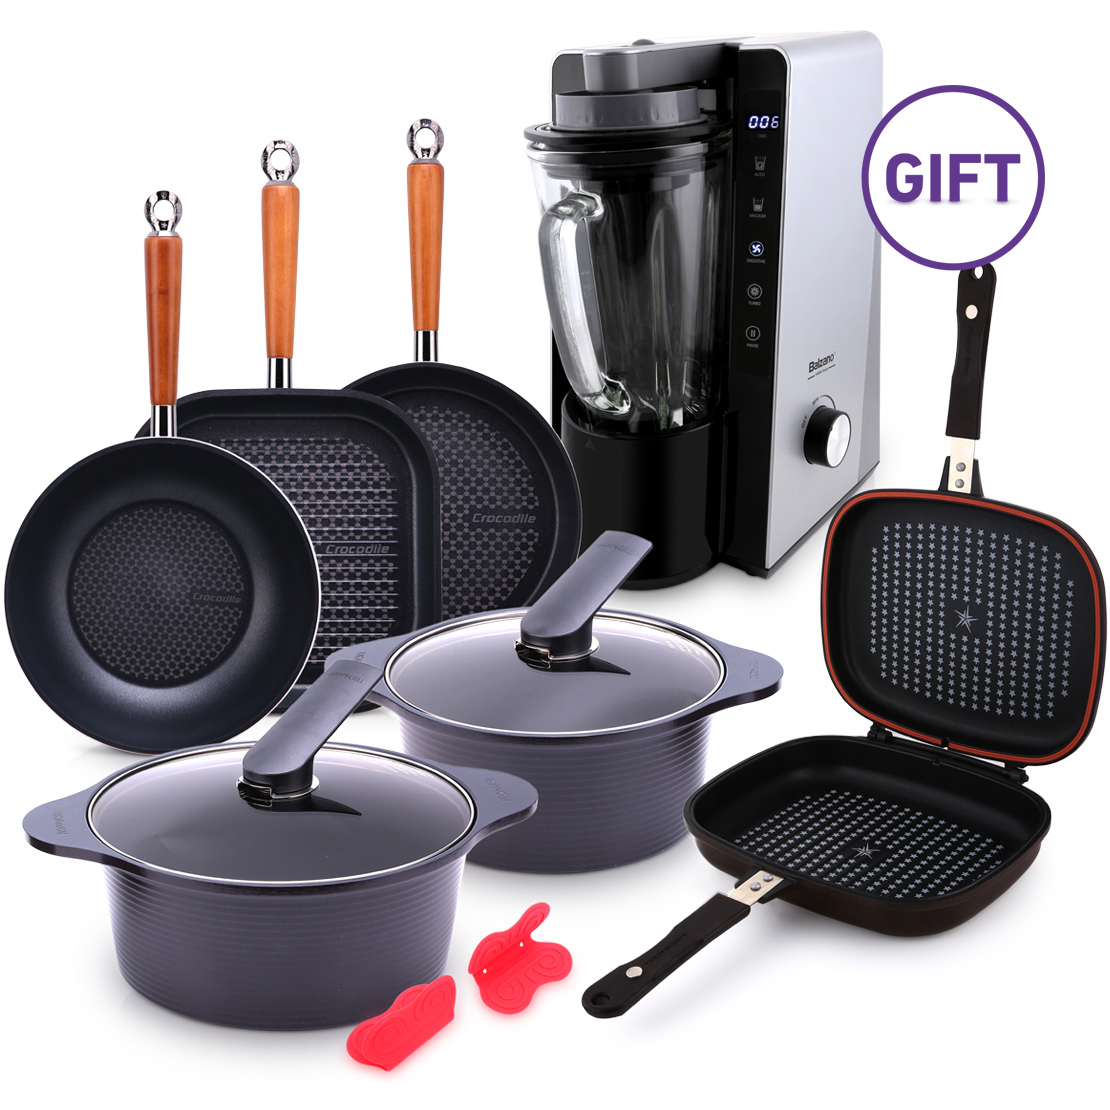 8 Piece Crocodile Cookware Set with Gifts